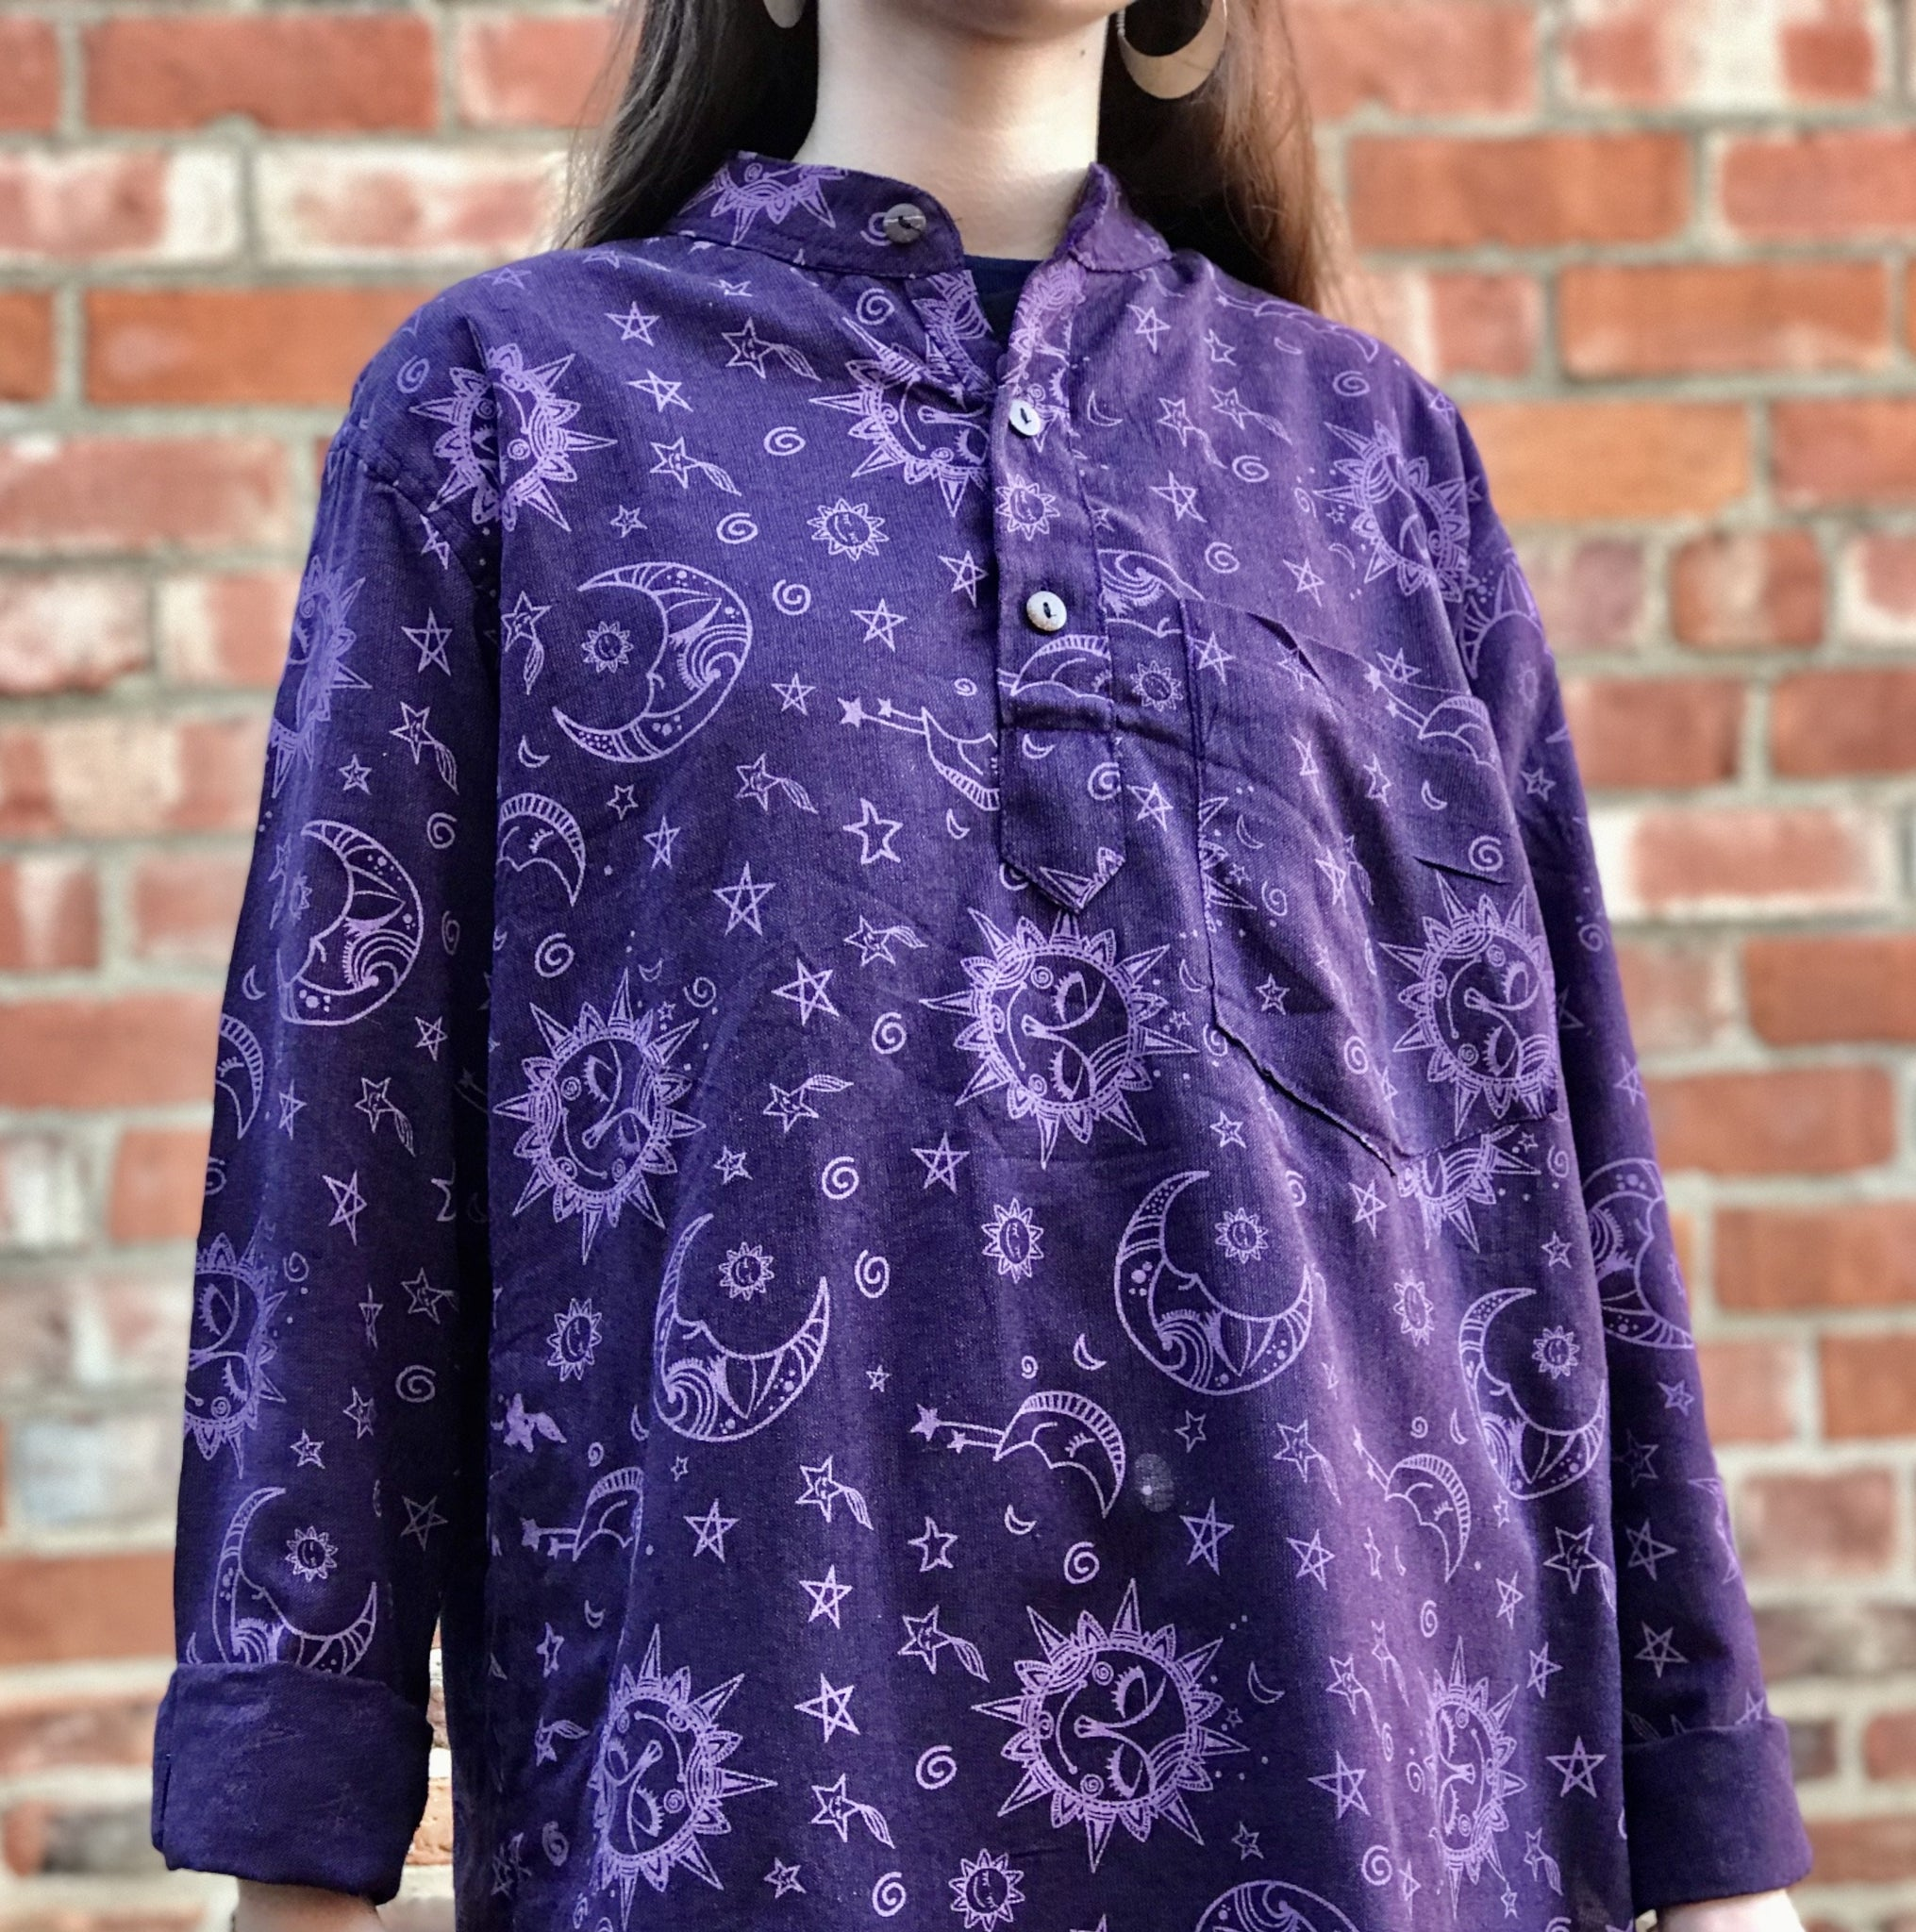 Purple Celestial Cosmos Shirt